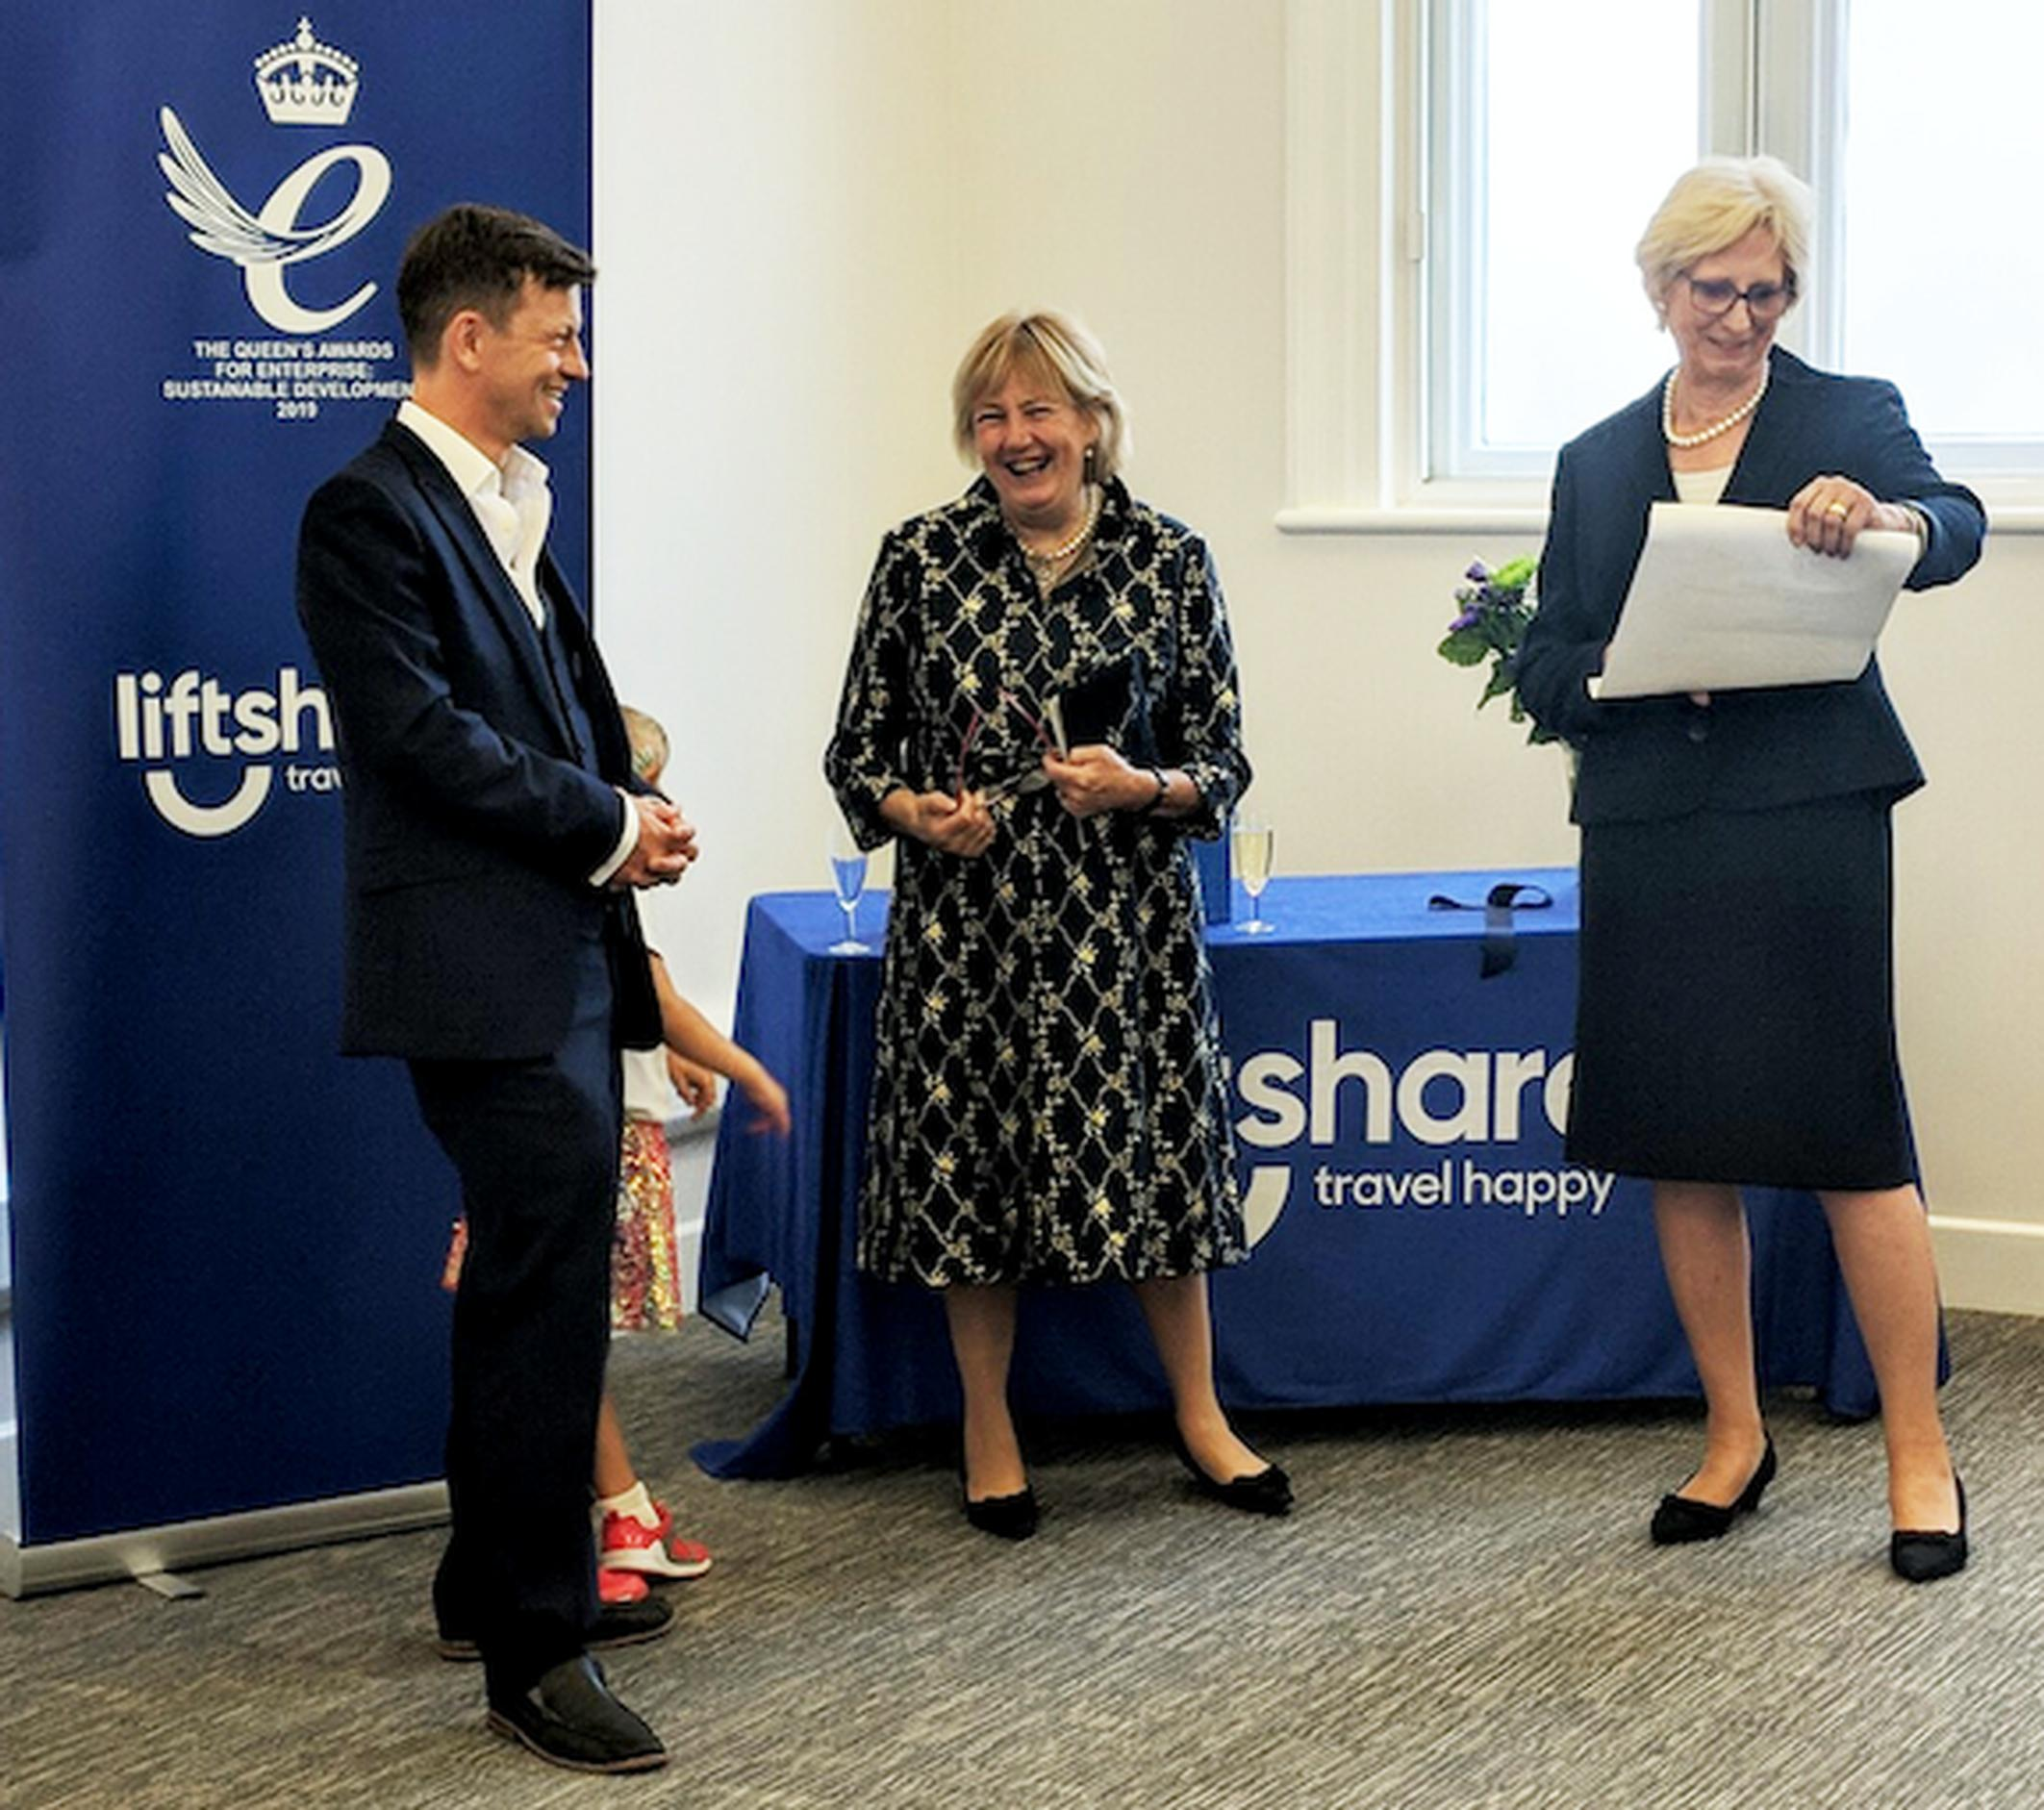 Liftshare receives Queen's Award for Enterprise